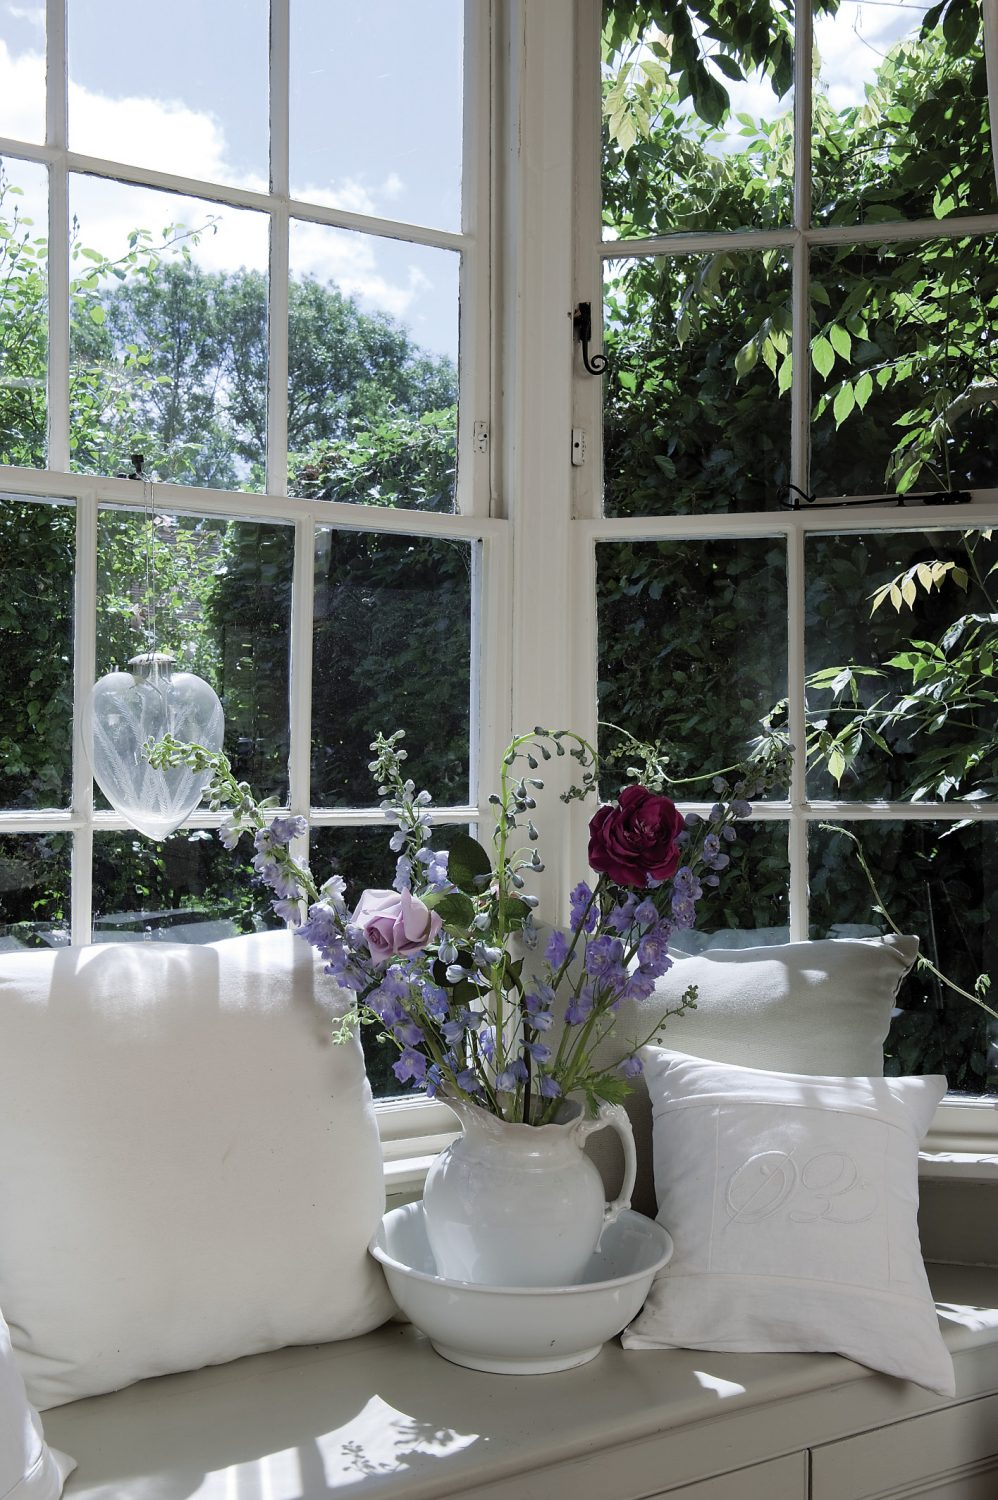 The dining room is painted in pale, Dior grey and white, and is bathed in warm sunlight from the south-facing bay window. A circular table has been dressed with a vintage damask cloth and set for breakfast